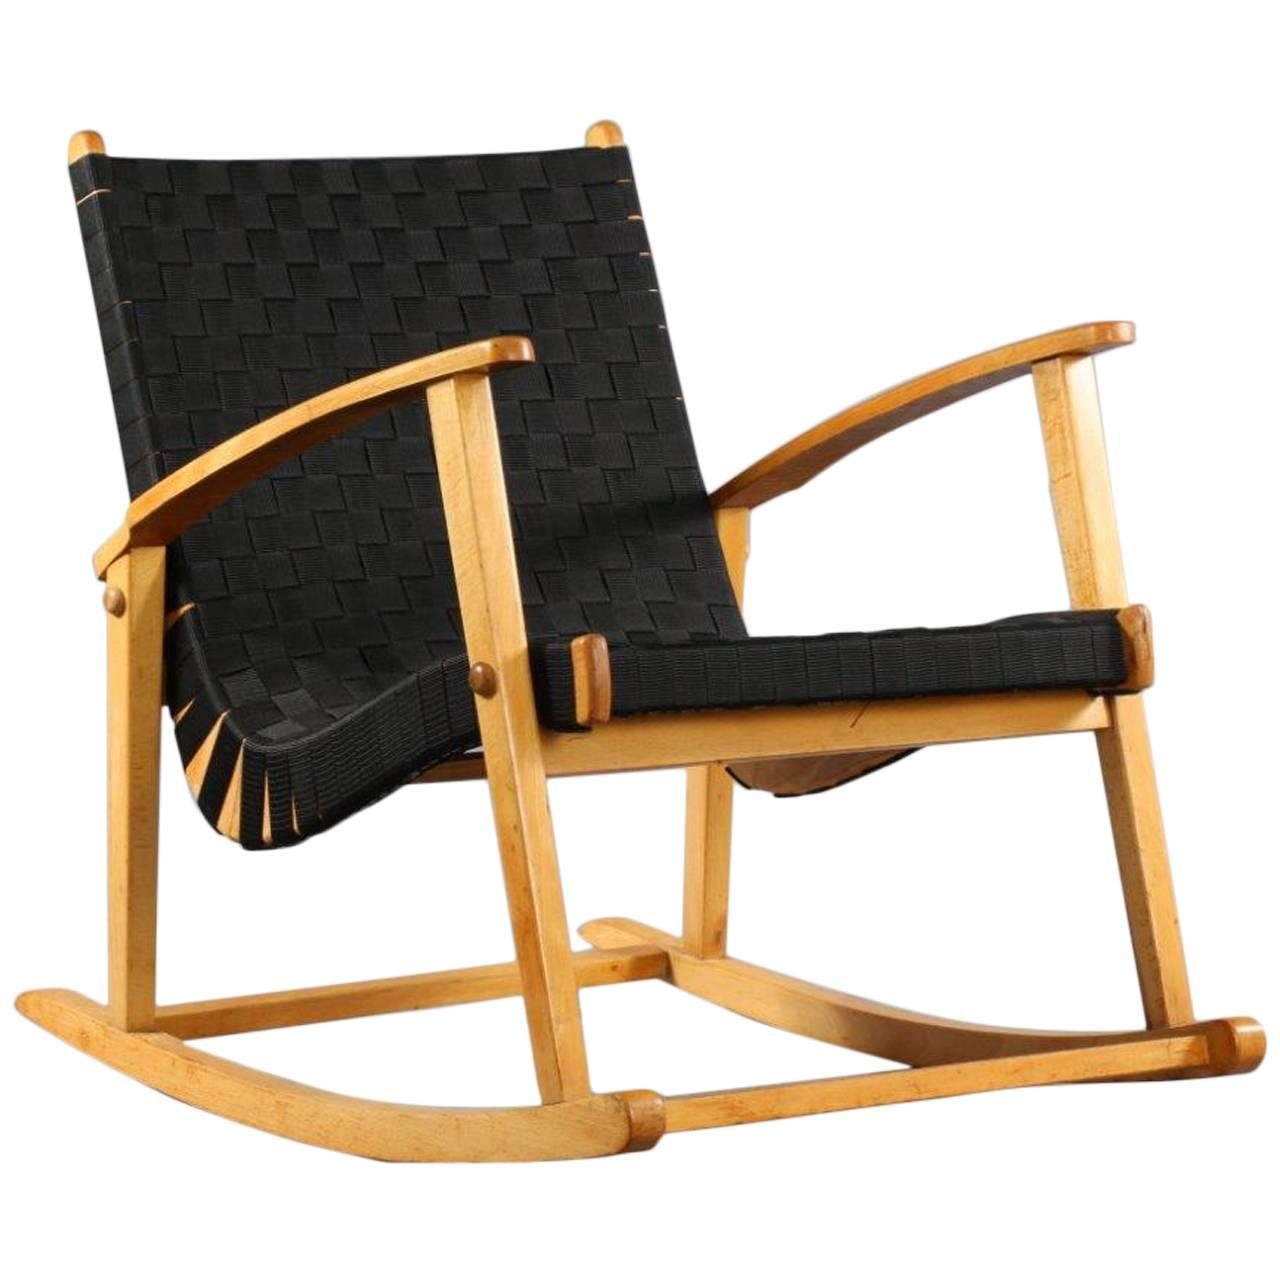 comfortable rocking chair attributed to jens risom 1950. Black Bedroom Furniture Sets. Home Design Ideas